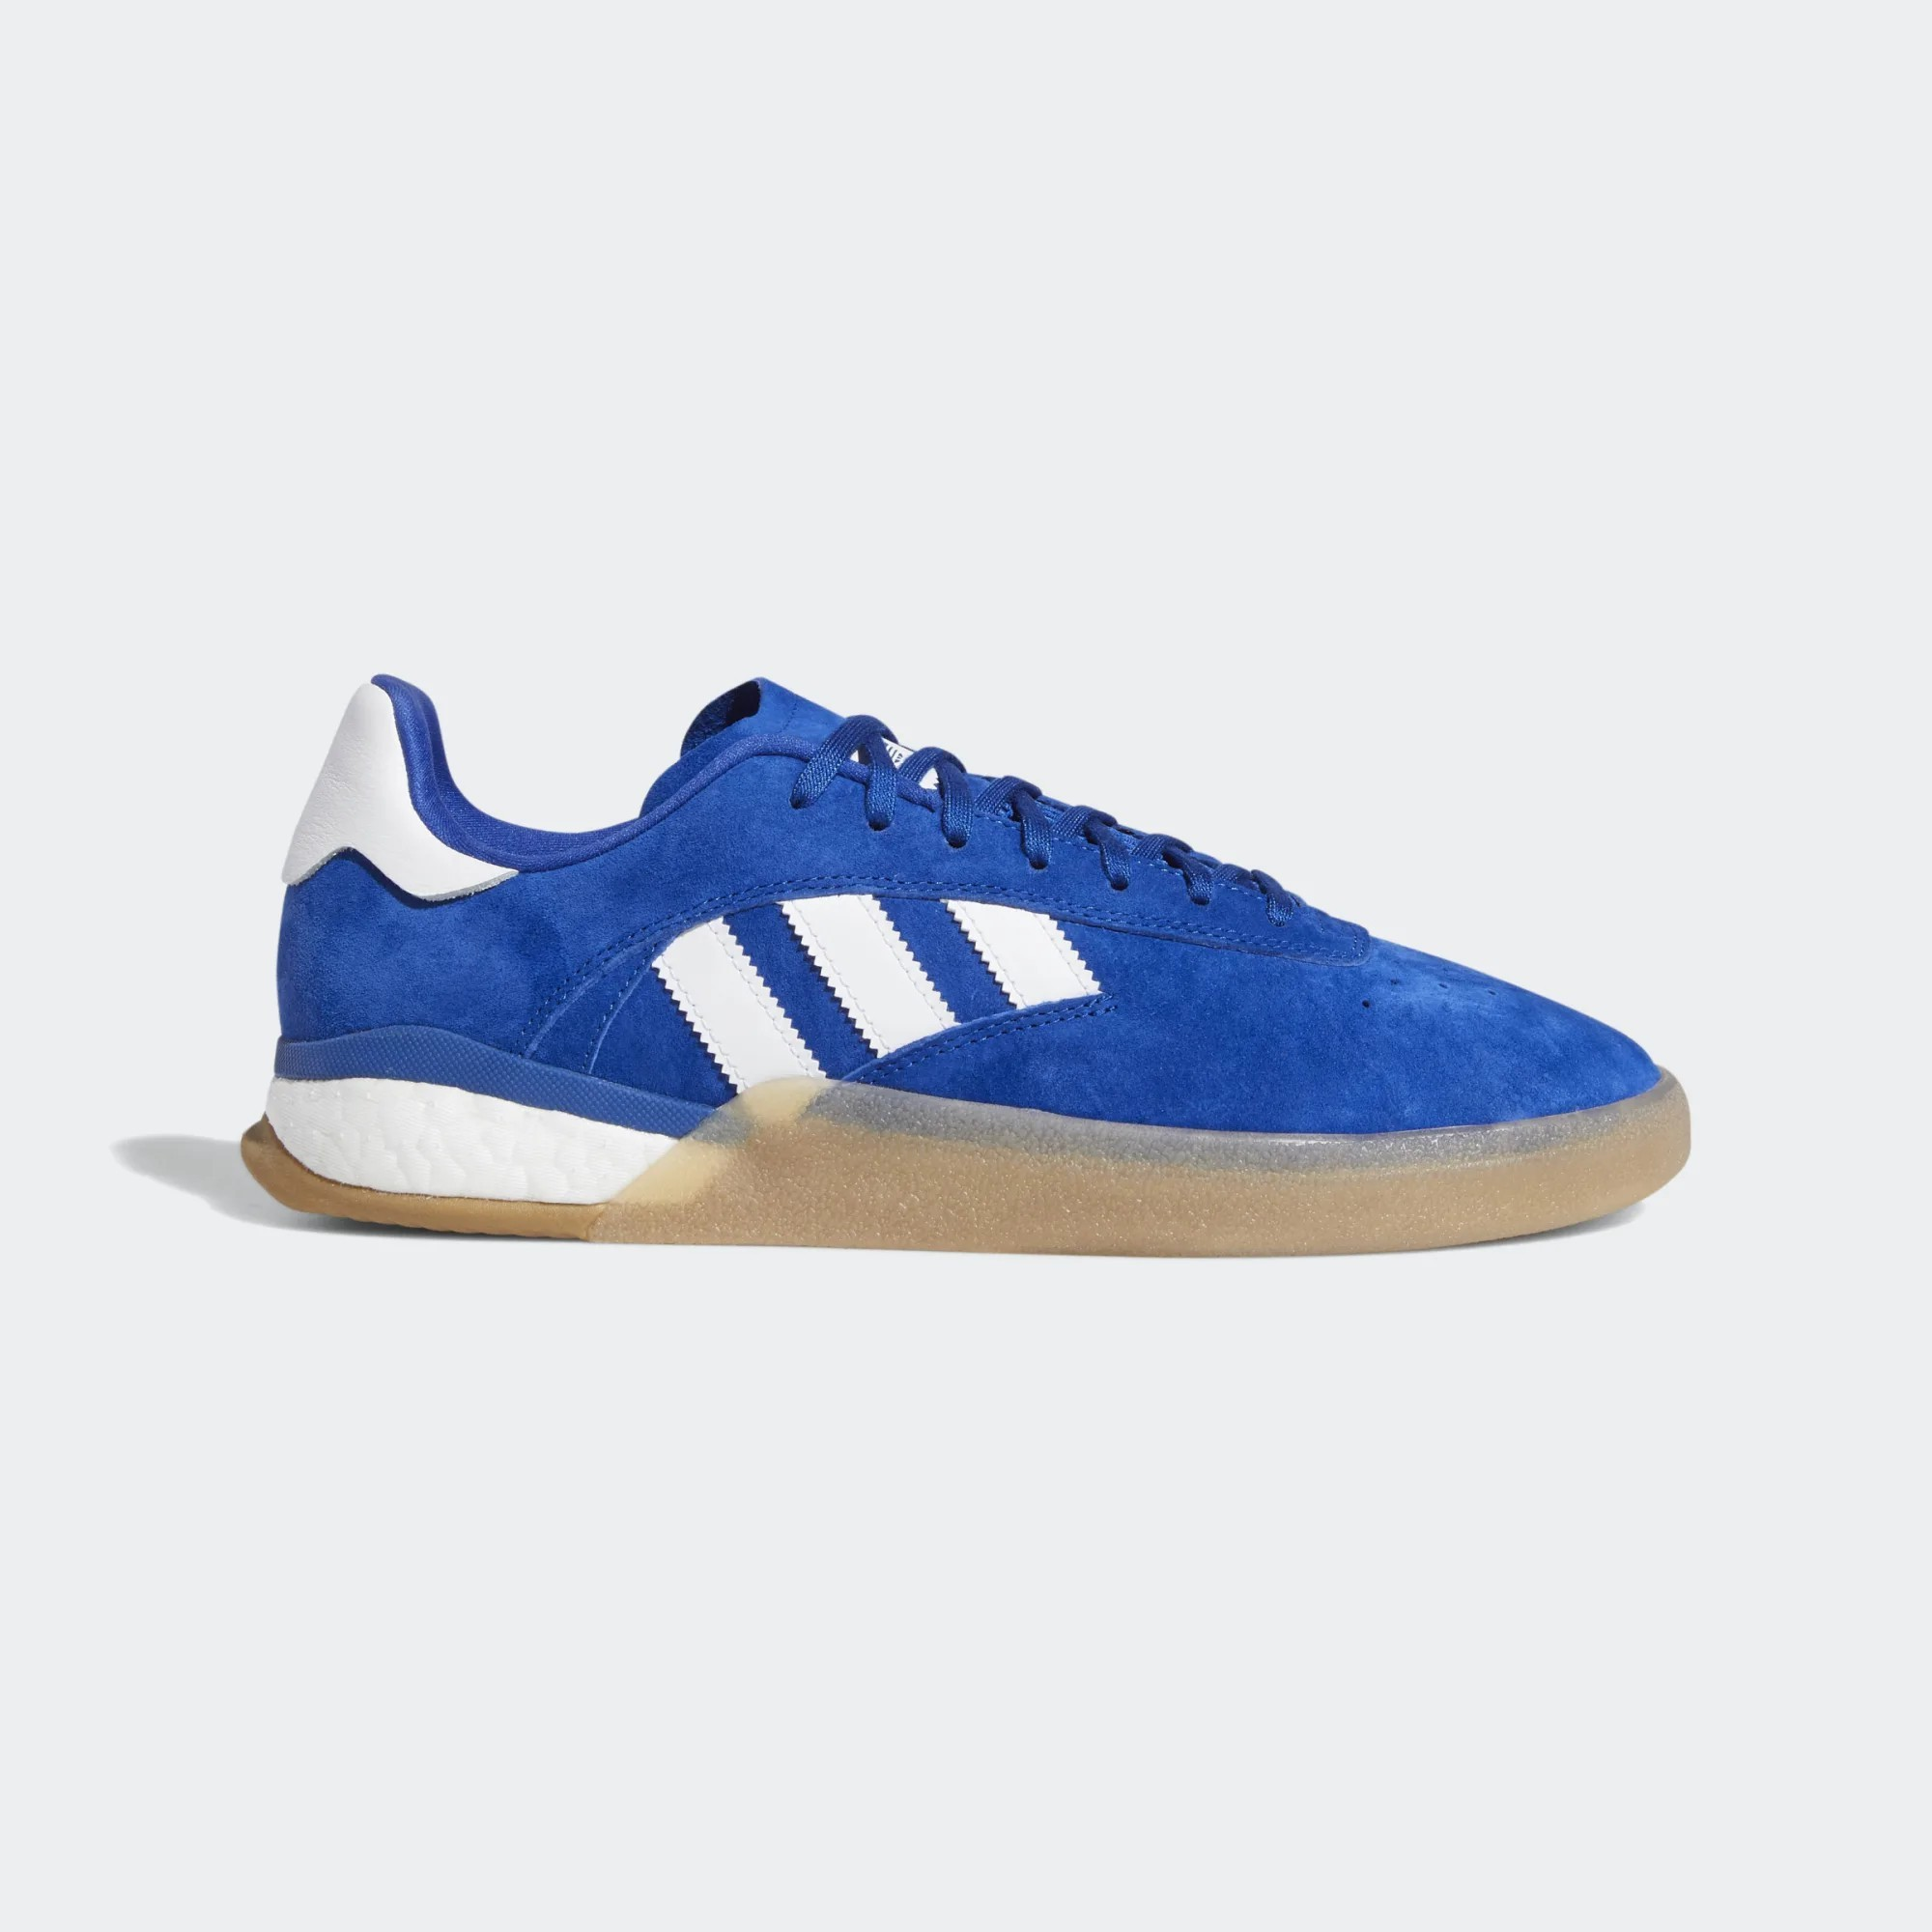 adidas Skateboarding 3ST.004 Blue Skate shoes DB3552